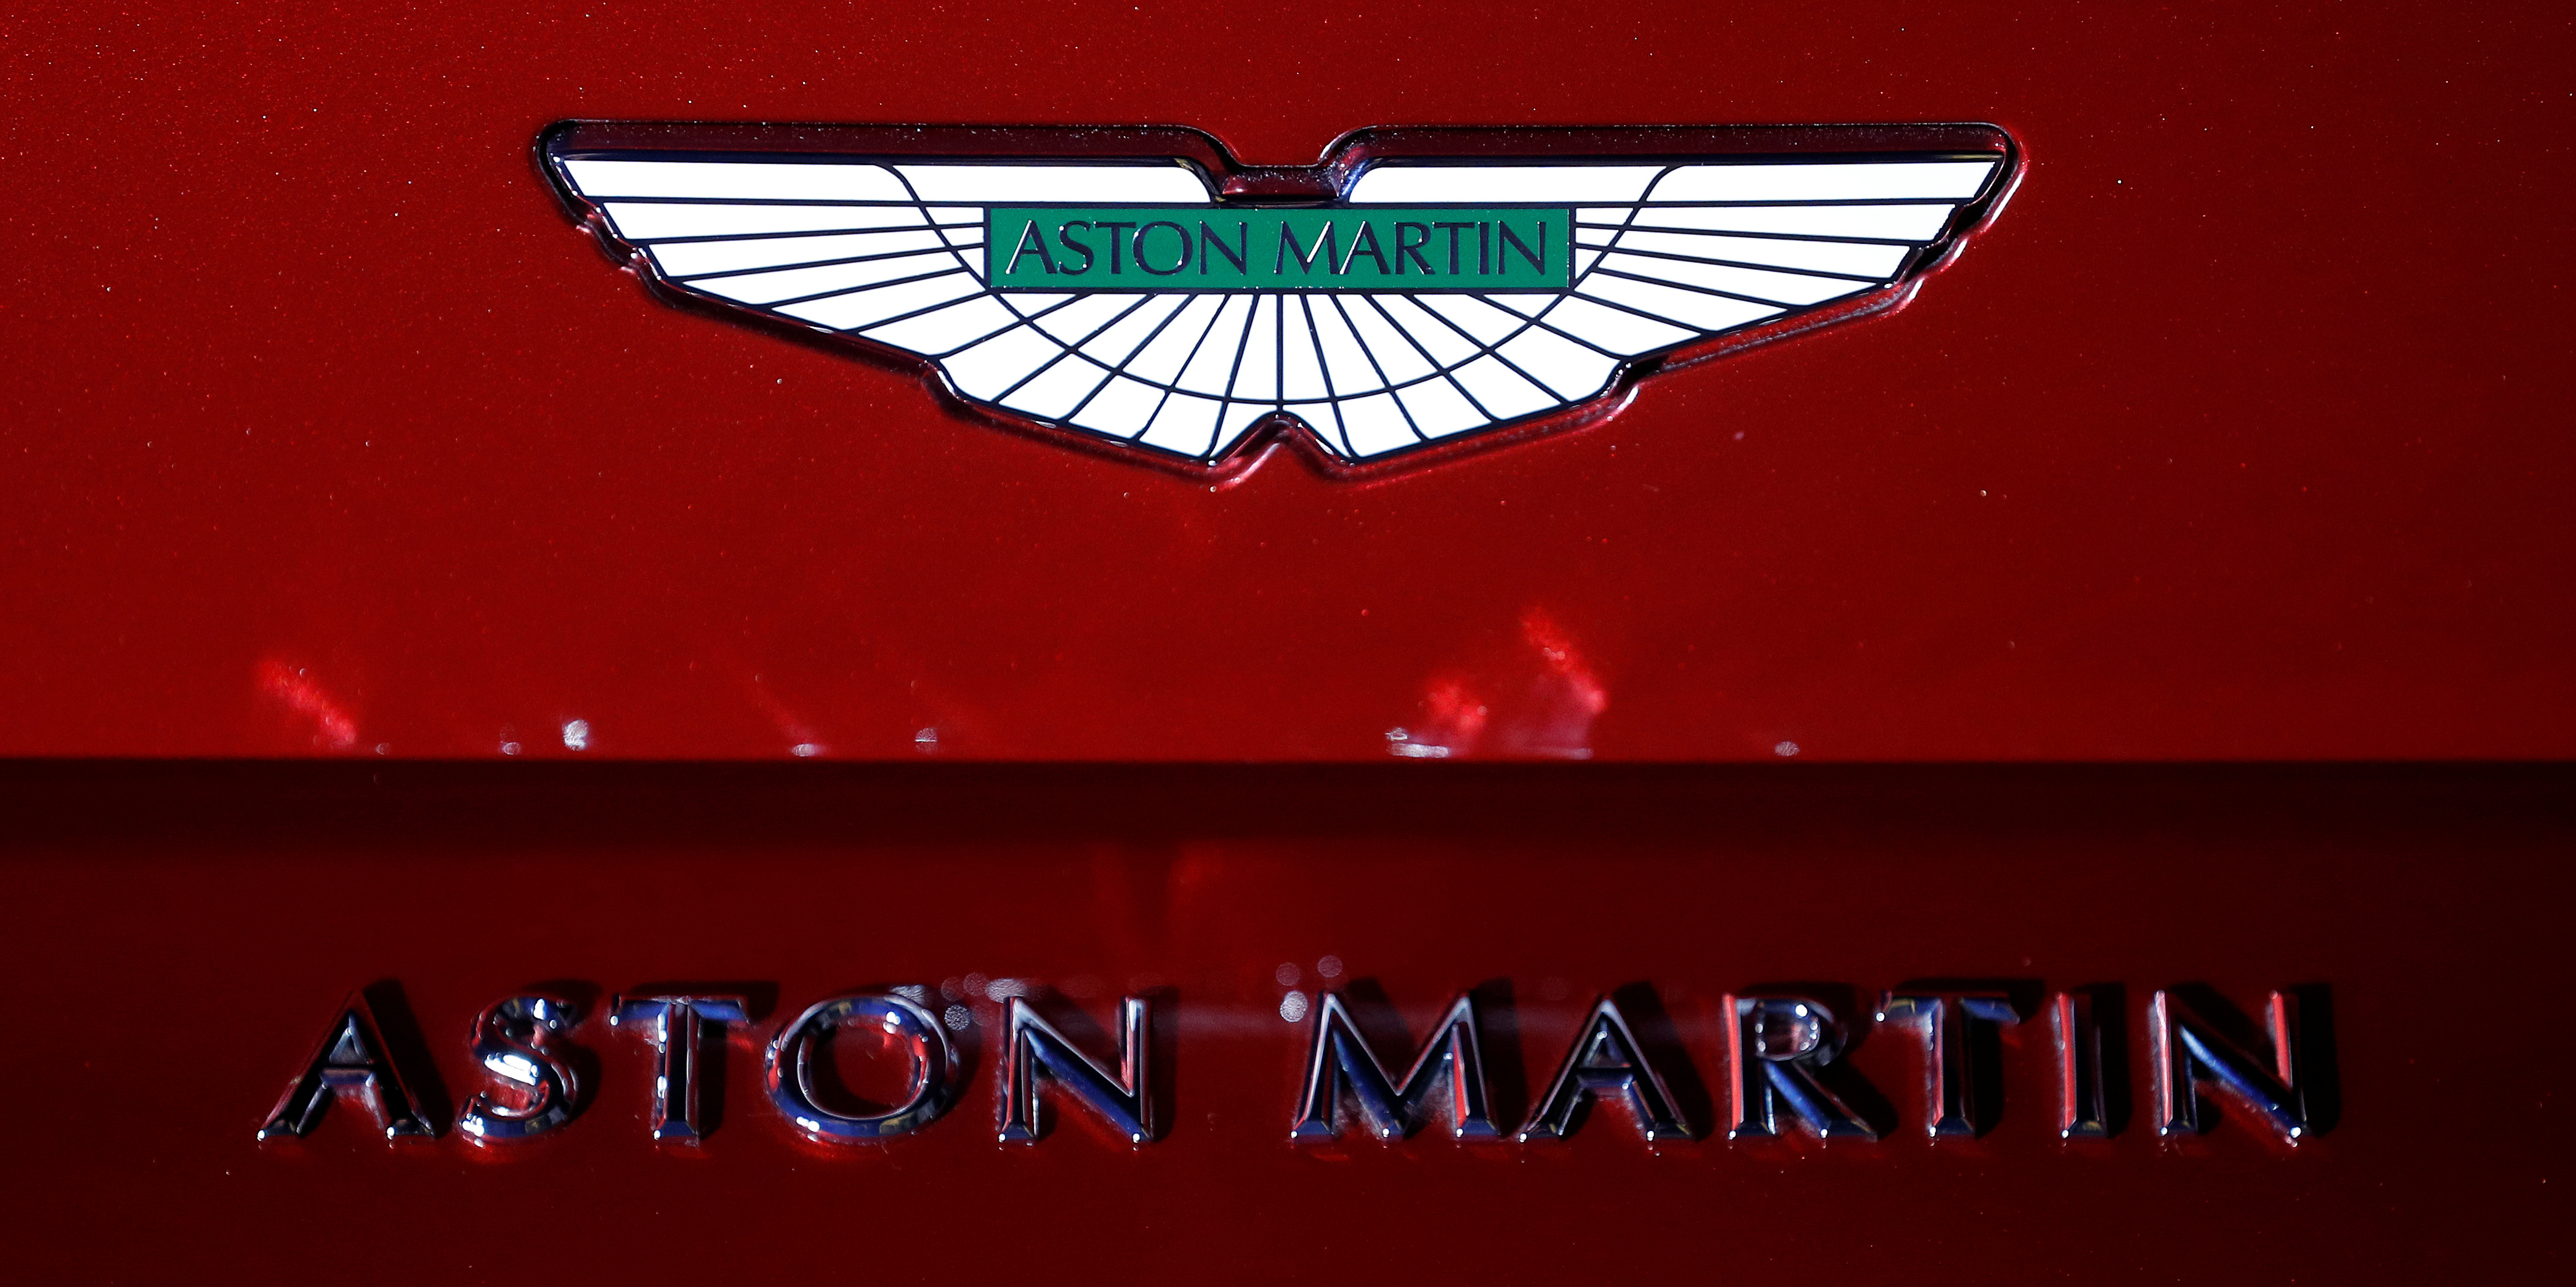 aston-martin-premier-benefice-imposable-en-vue-depuis-2010